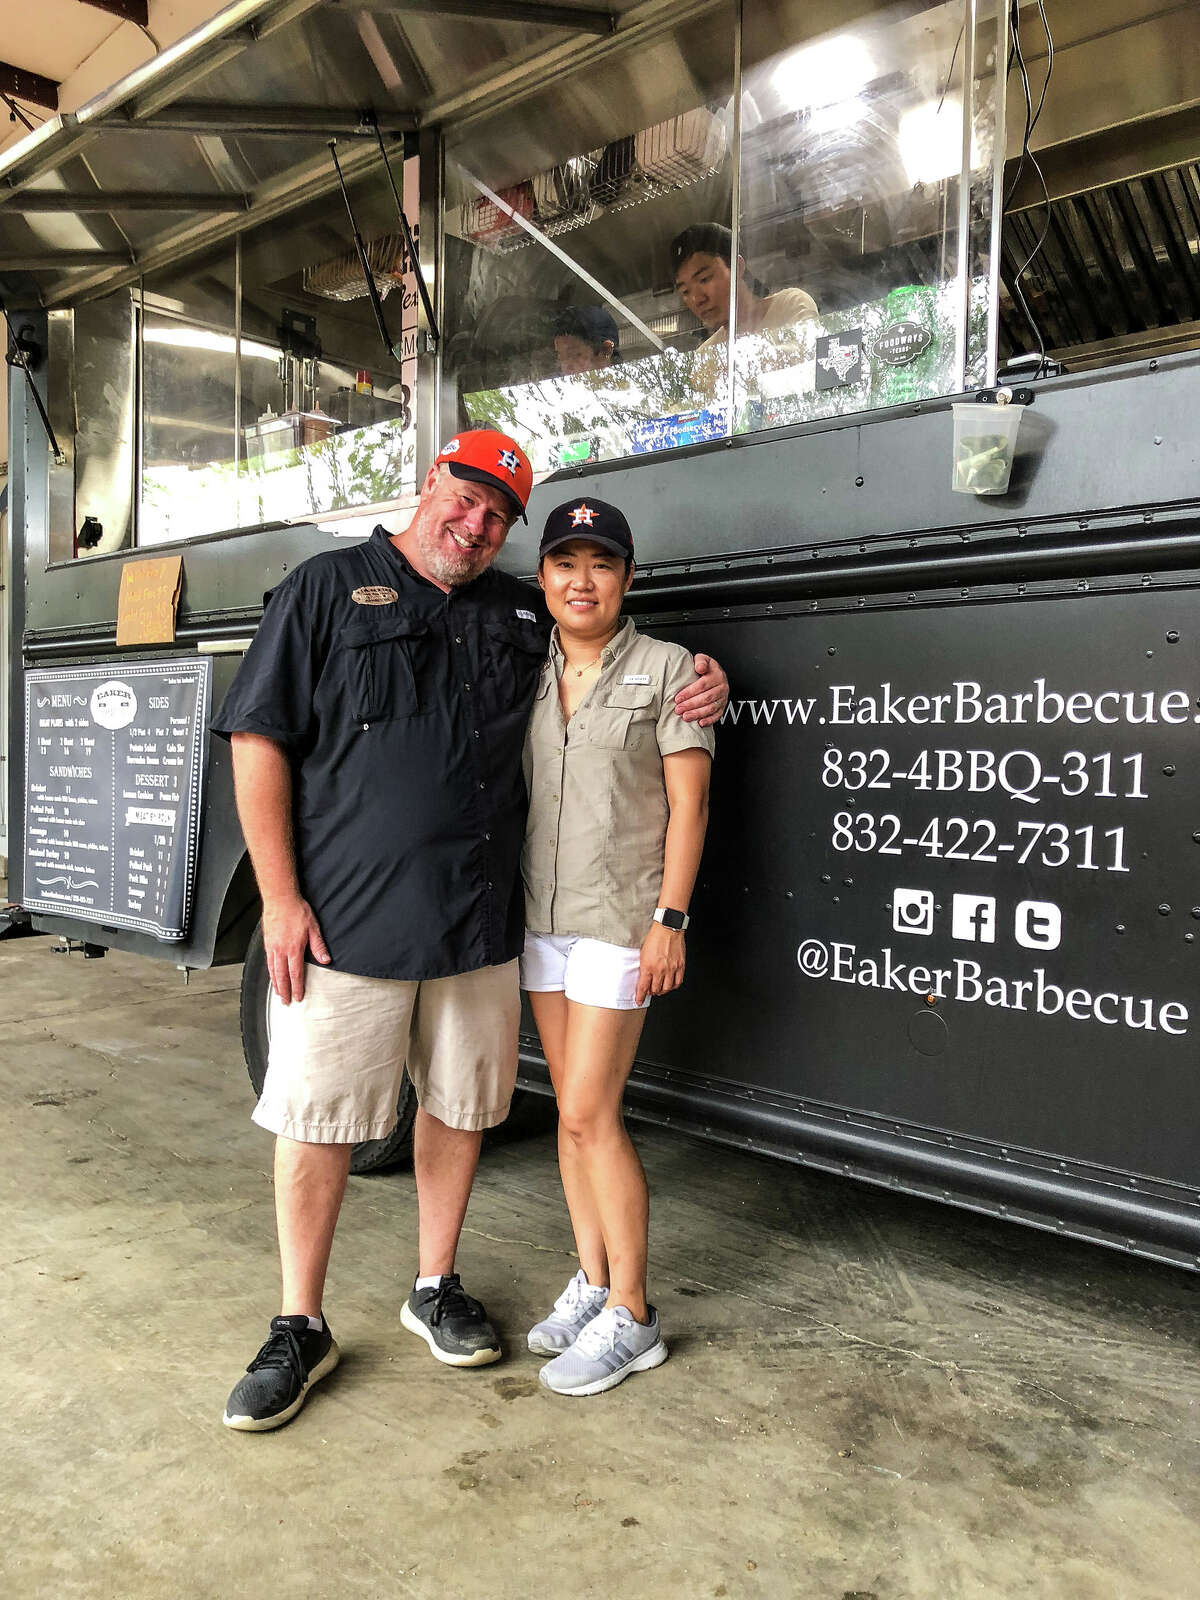 Lance and Boo Eaker of Eaker Barbecue will participate in the sixth annual Super Beef Sunday at Saint Arnold Brewing Company on Feb. 3.